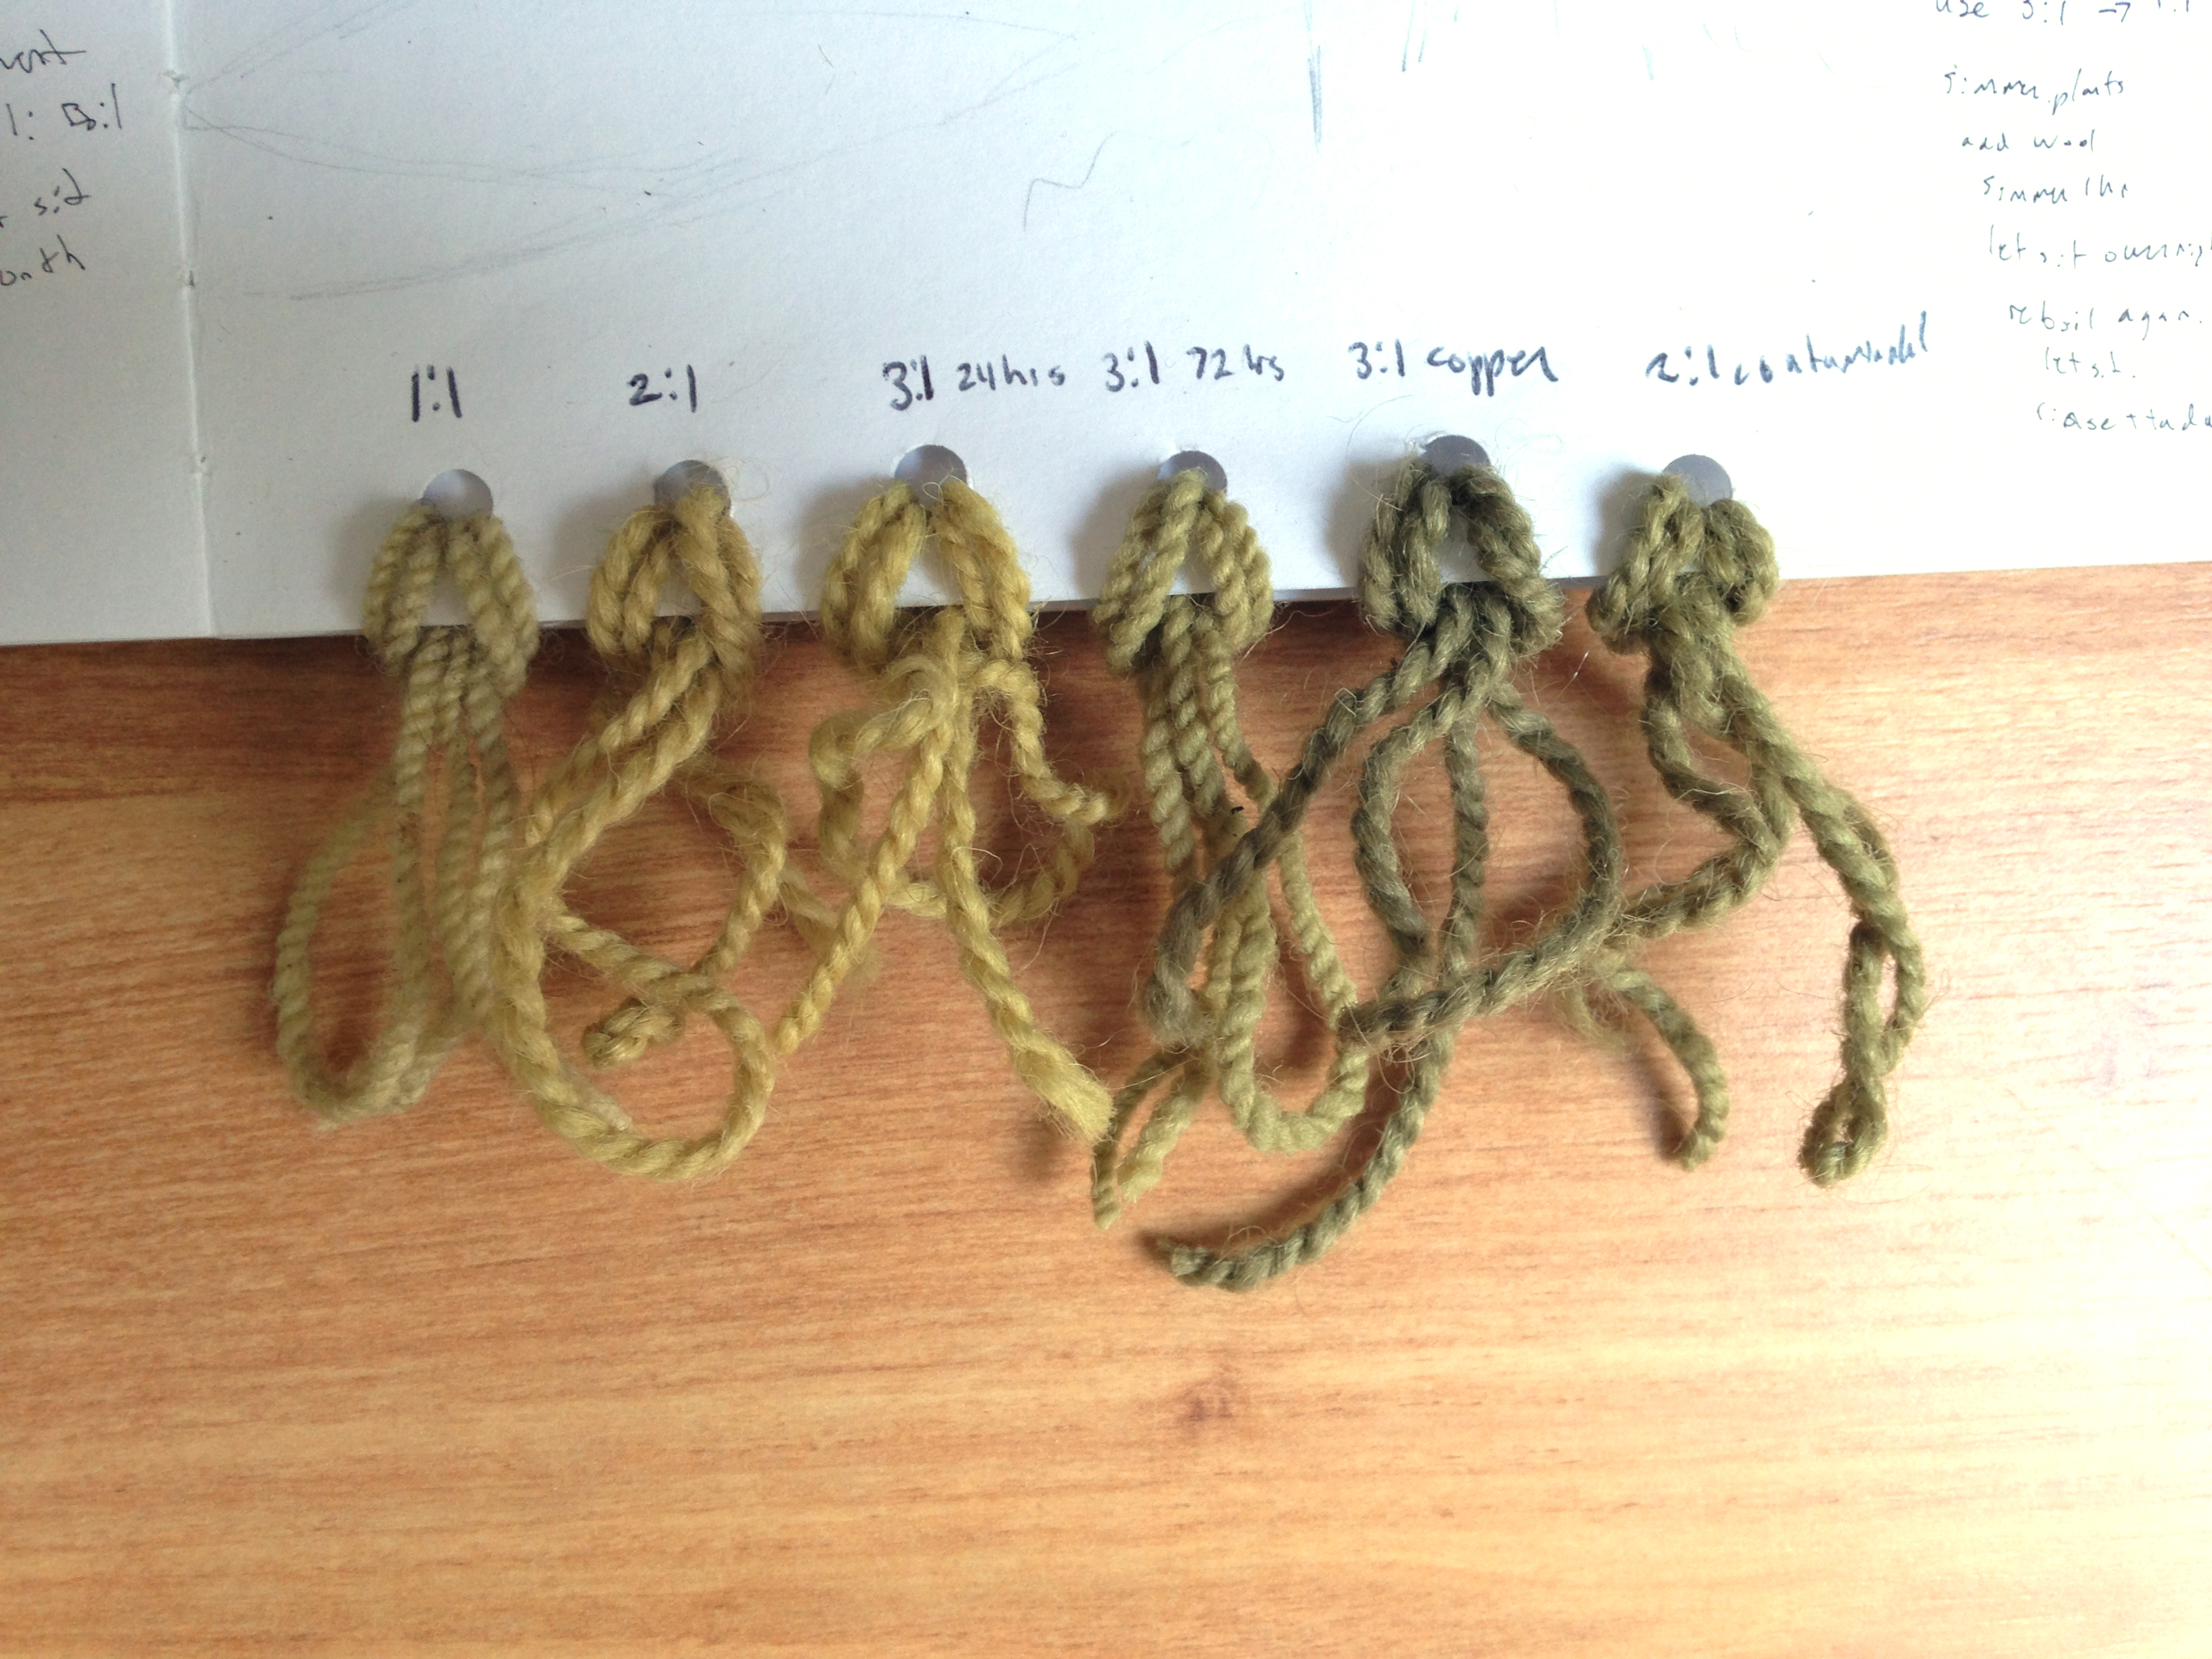 nettle dye, natural dyes, sample pieces, stinging nettle plant dye